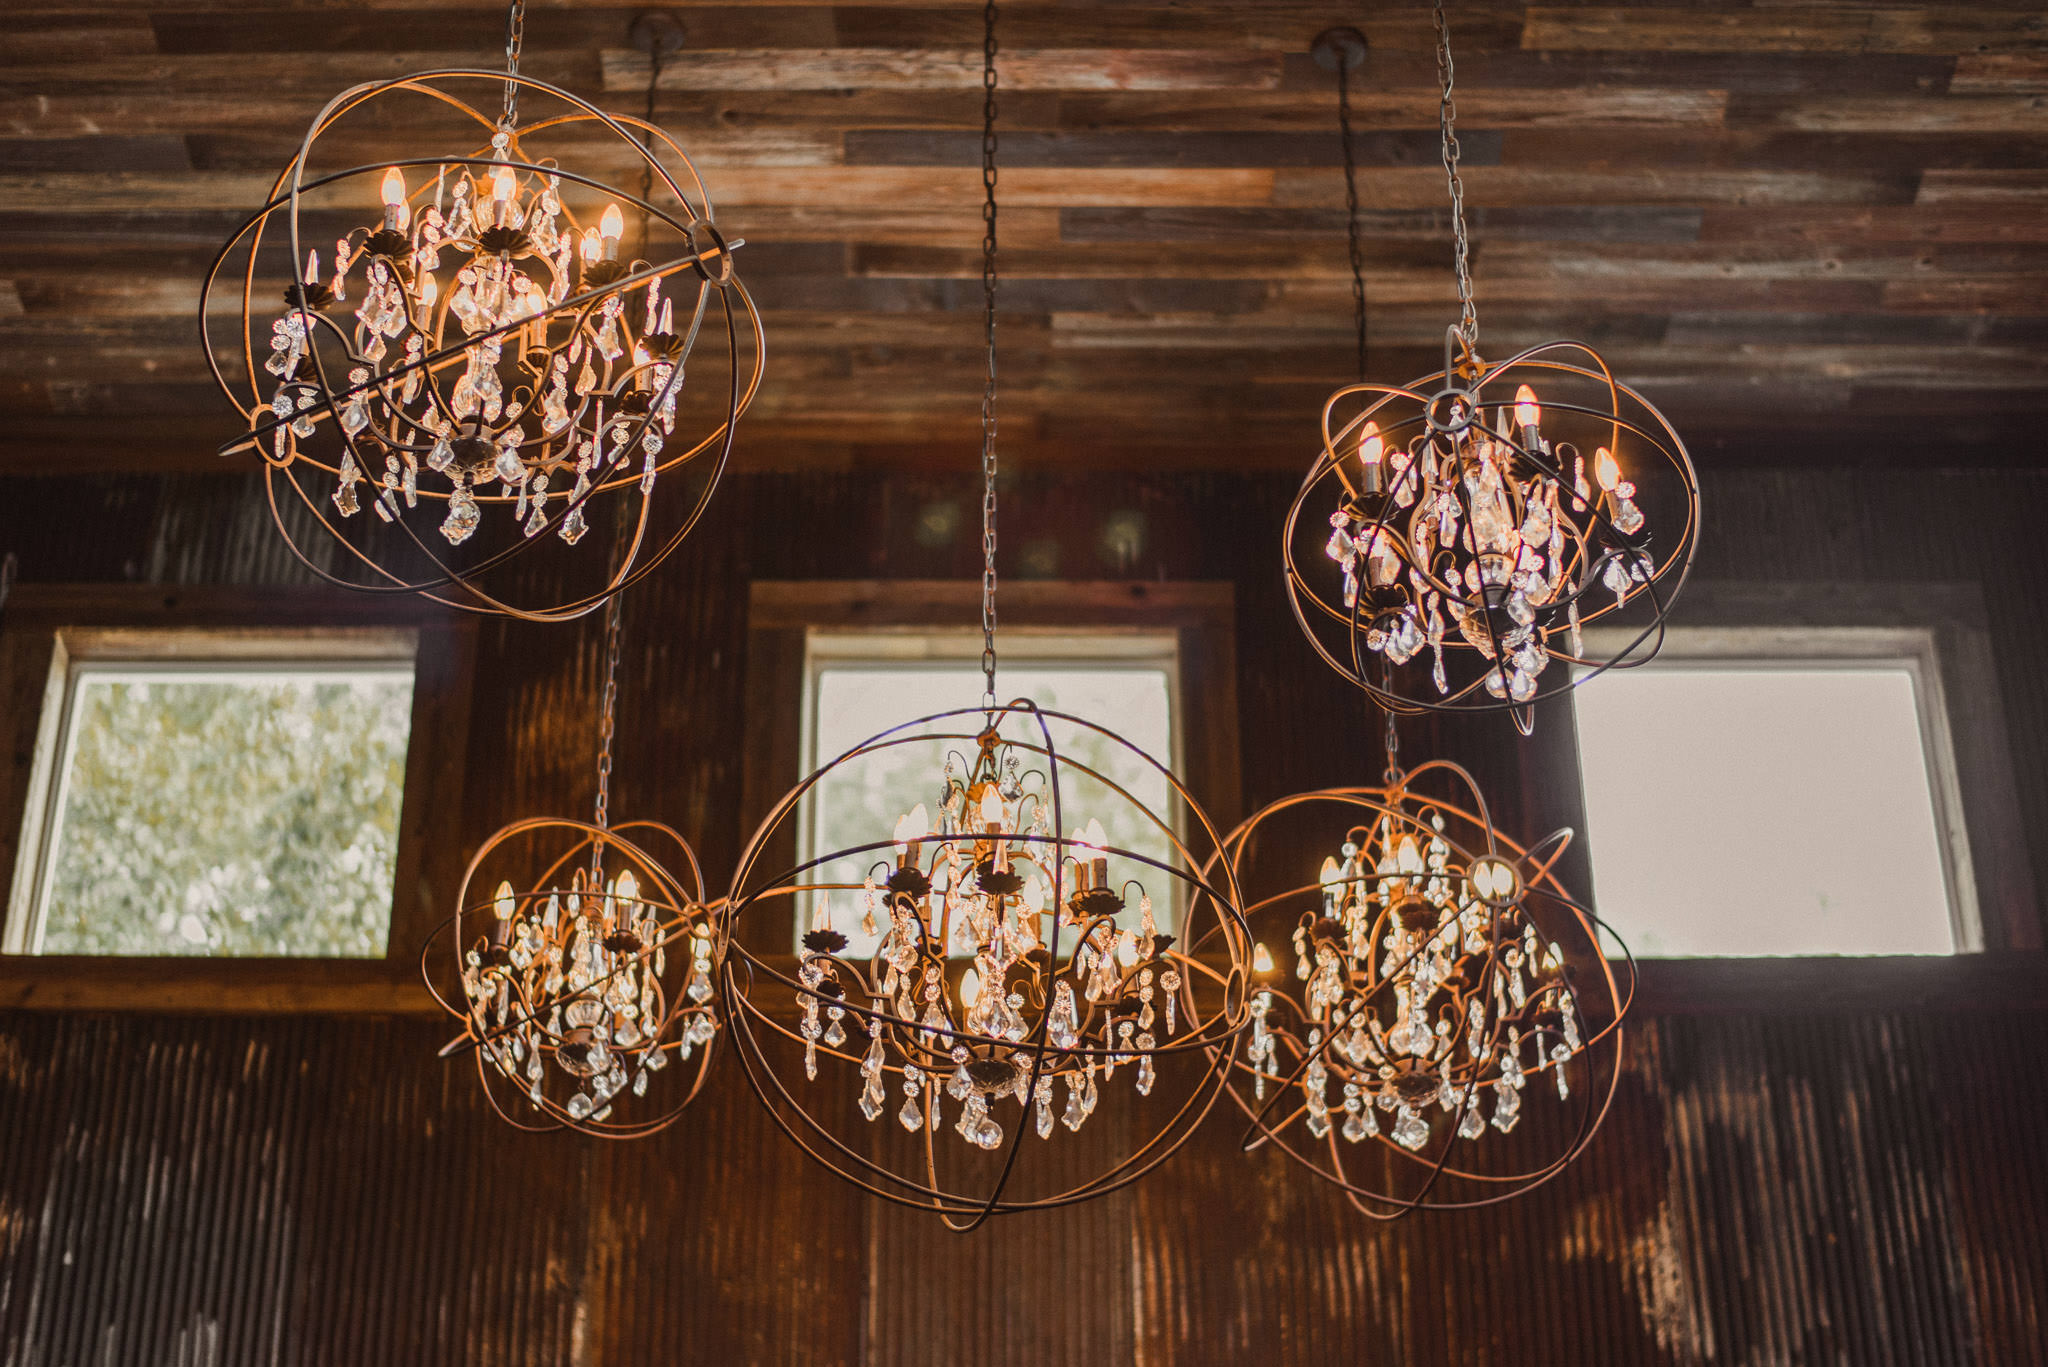 magnolia-bells-rustic-woodsy-houston-resort-wedding-photographer-cabin-decor